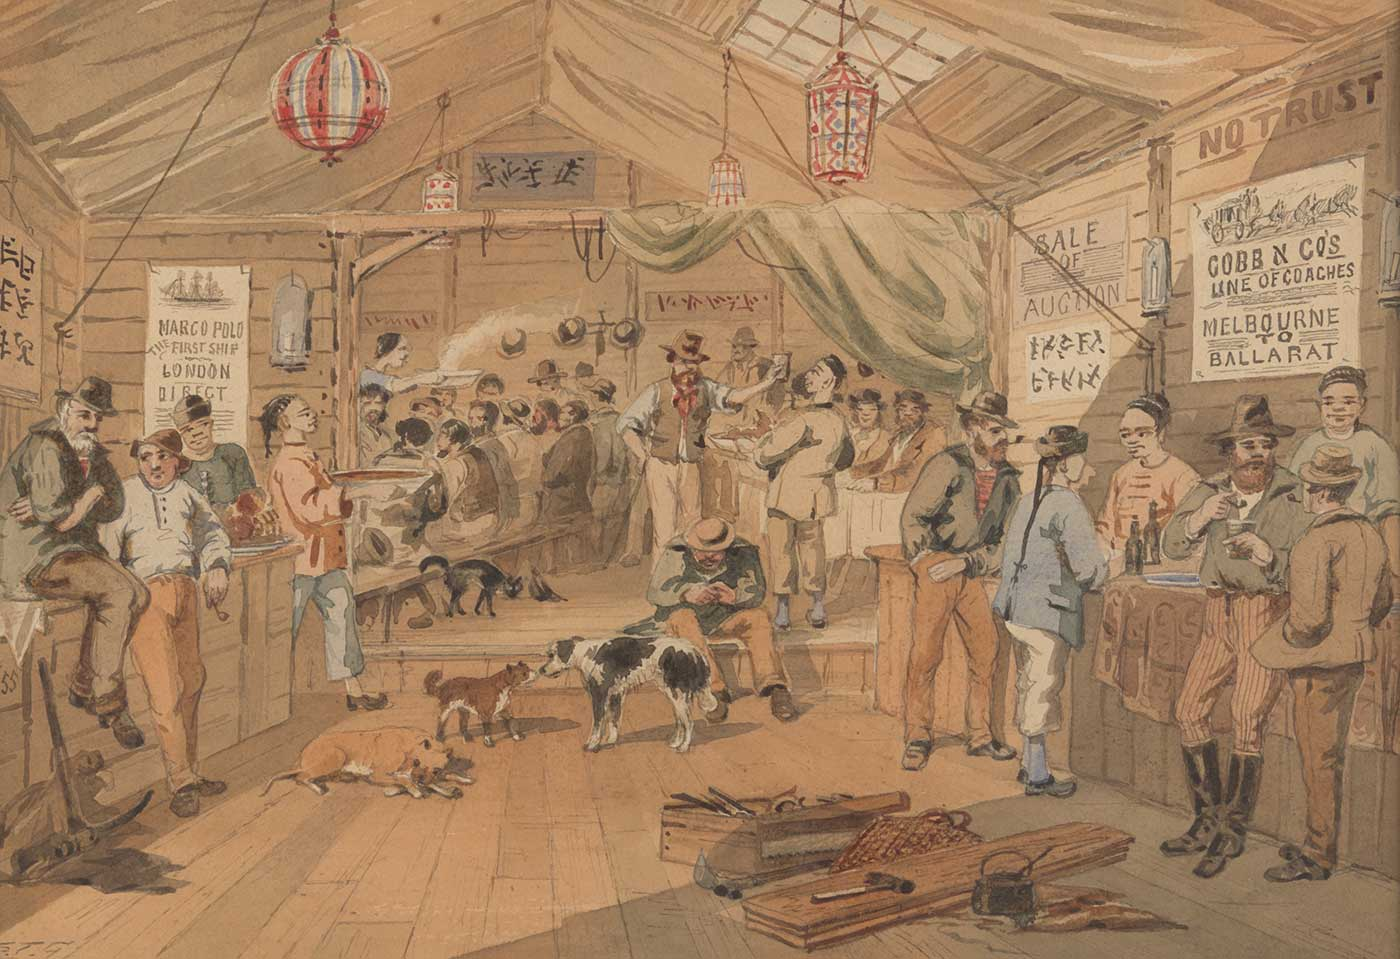 A watercolour painting in browns, white, red, blue and grey depicting a bar with wooden walls and fabric covering the ceiling. The bar is crowded with people and there are three dogs and a cat. There are work tools in the foreground, and posters on the walls in two languages include 'SALE / OF / AUCTION', 'MARCO POLO / FIRST SHIP ...' and 'COBB N CO'S / LINE OF COACHES'. The painting is signed in pencil in bottom left corner 'S.T.G.'. - click to view larger image